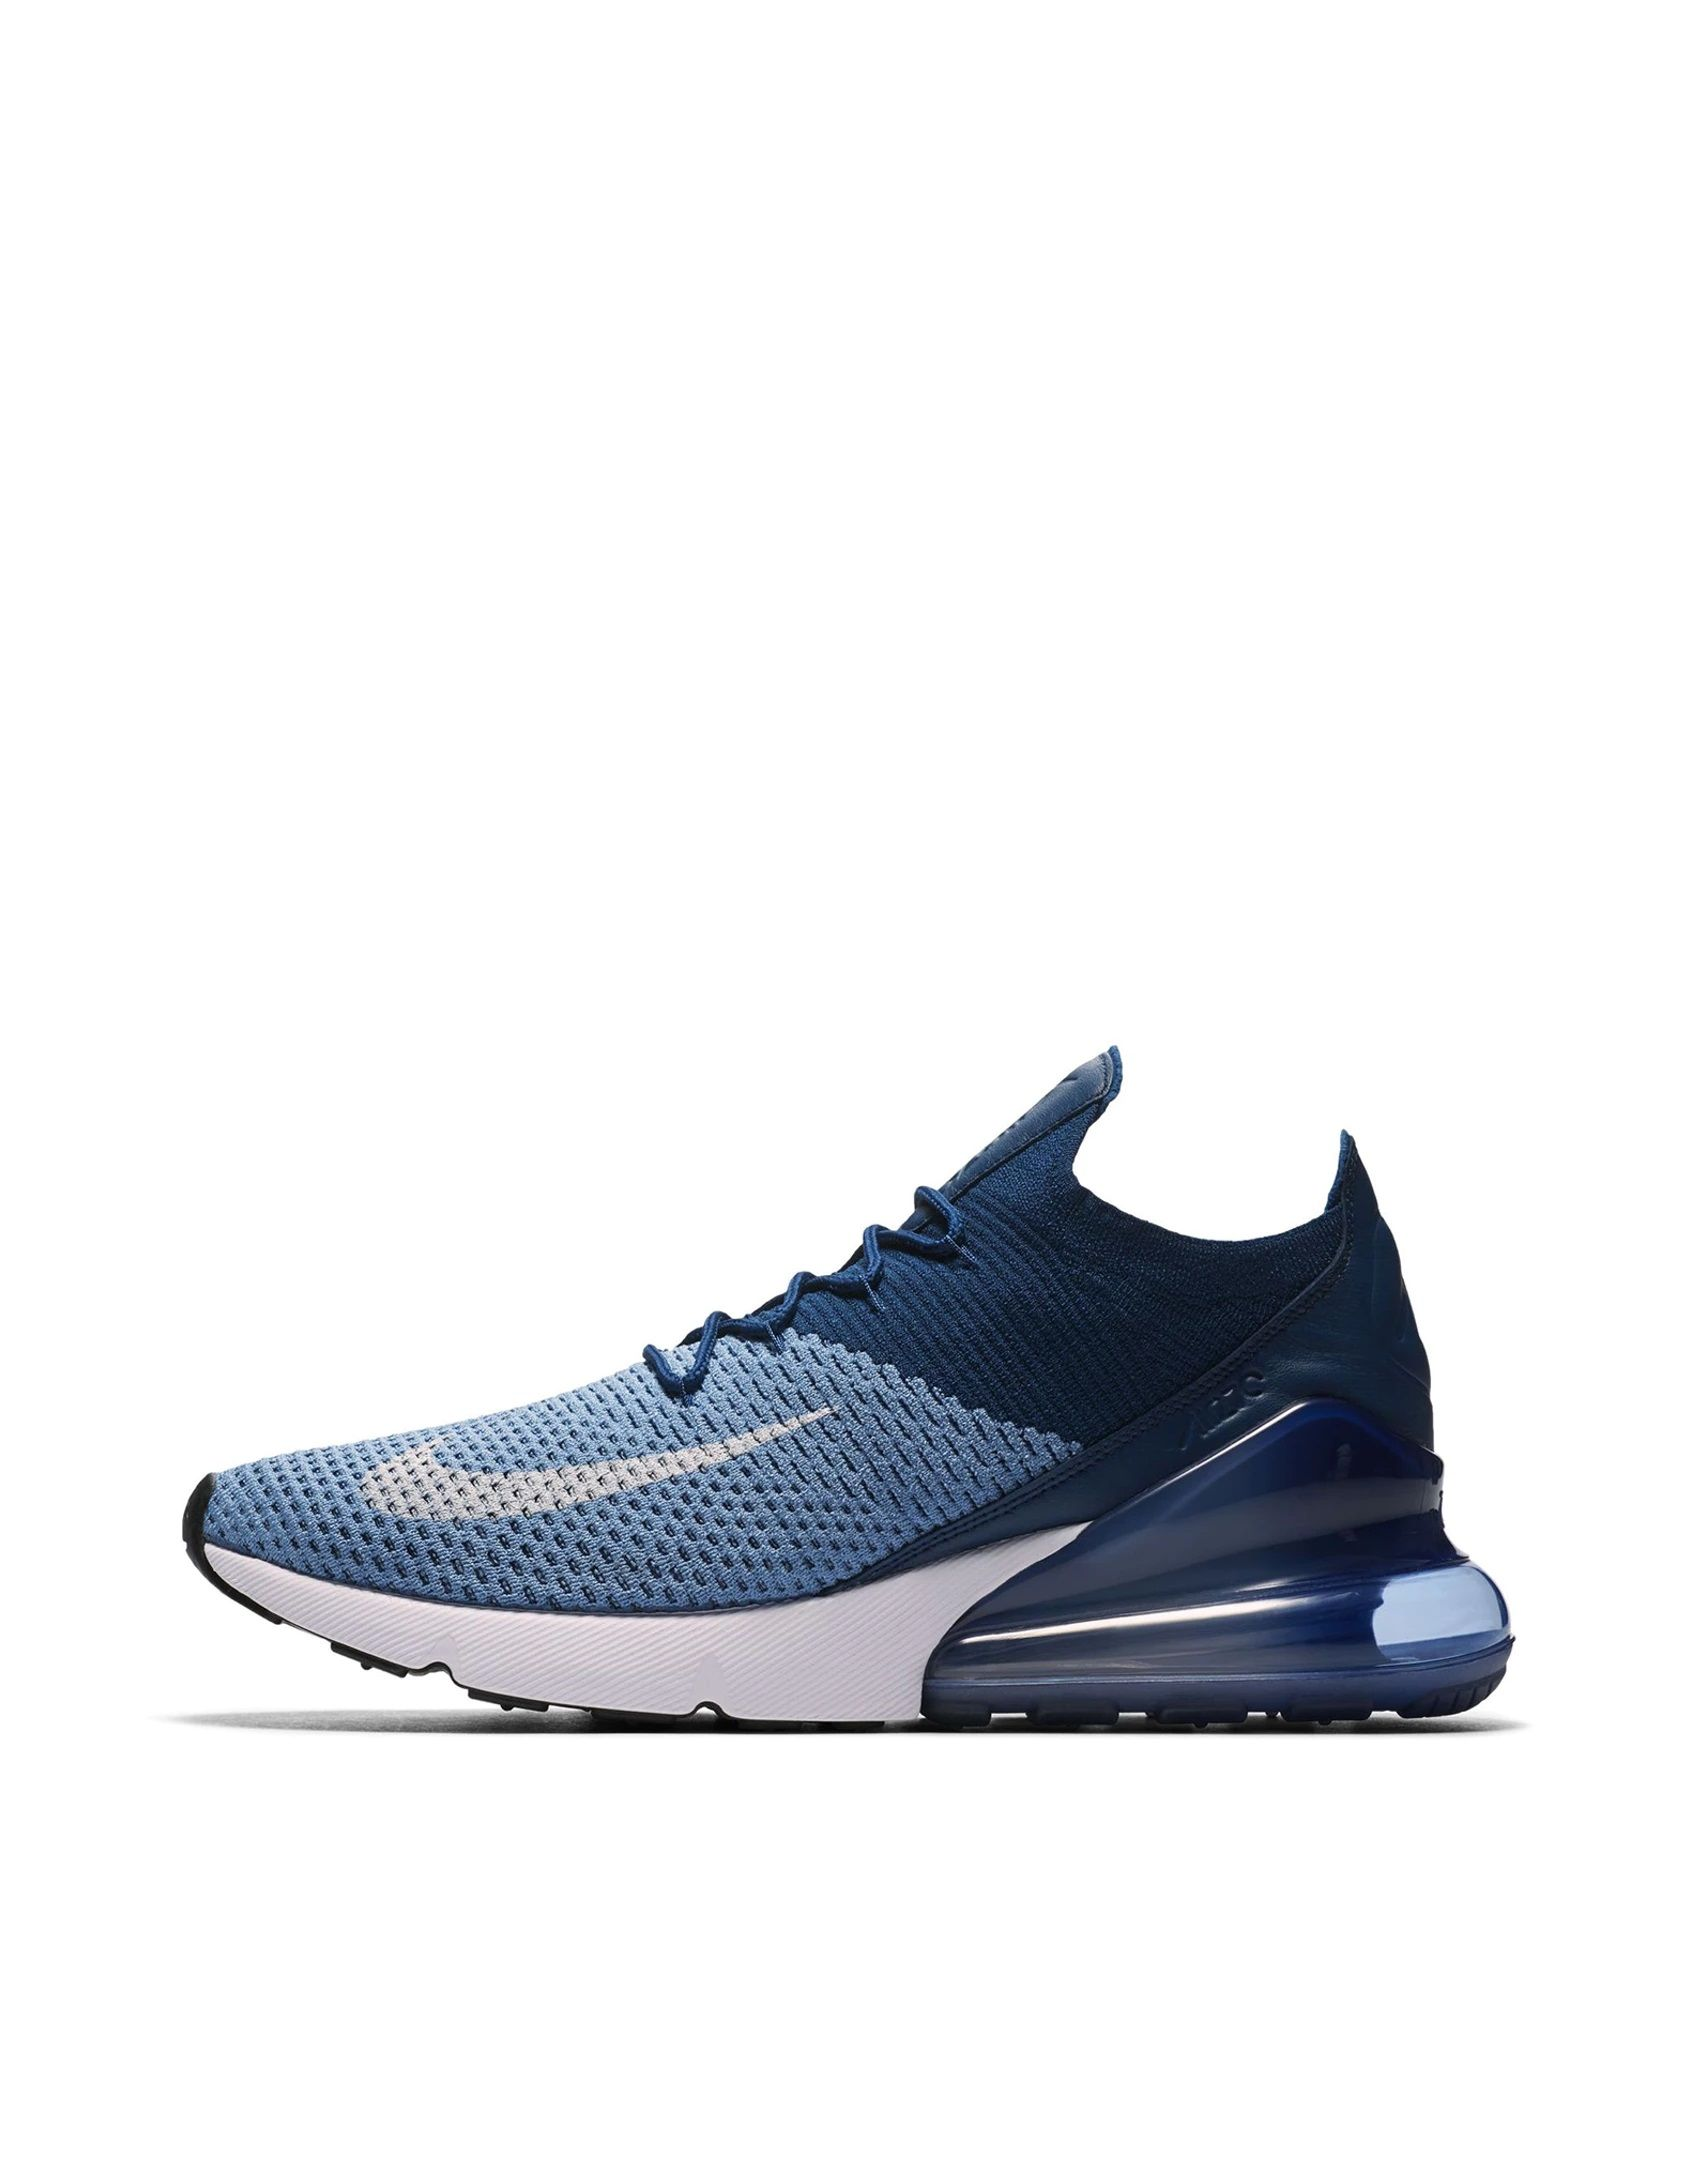 check out 1fd55 f9e92 Nike Air Max 270 | Shoes in 2019 | Sneakers nike, Nike shoes ...